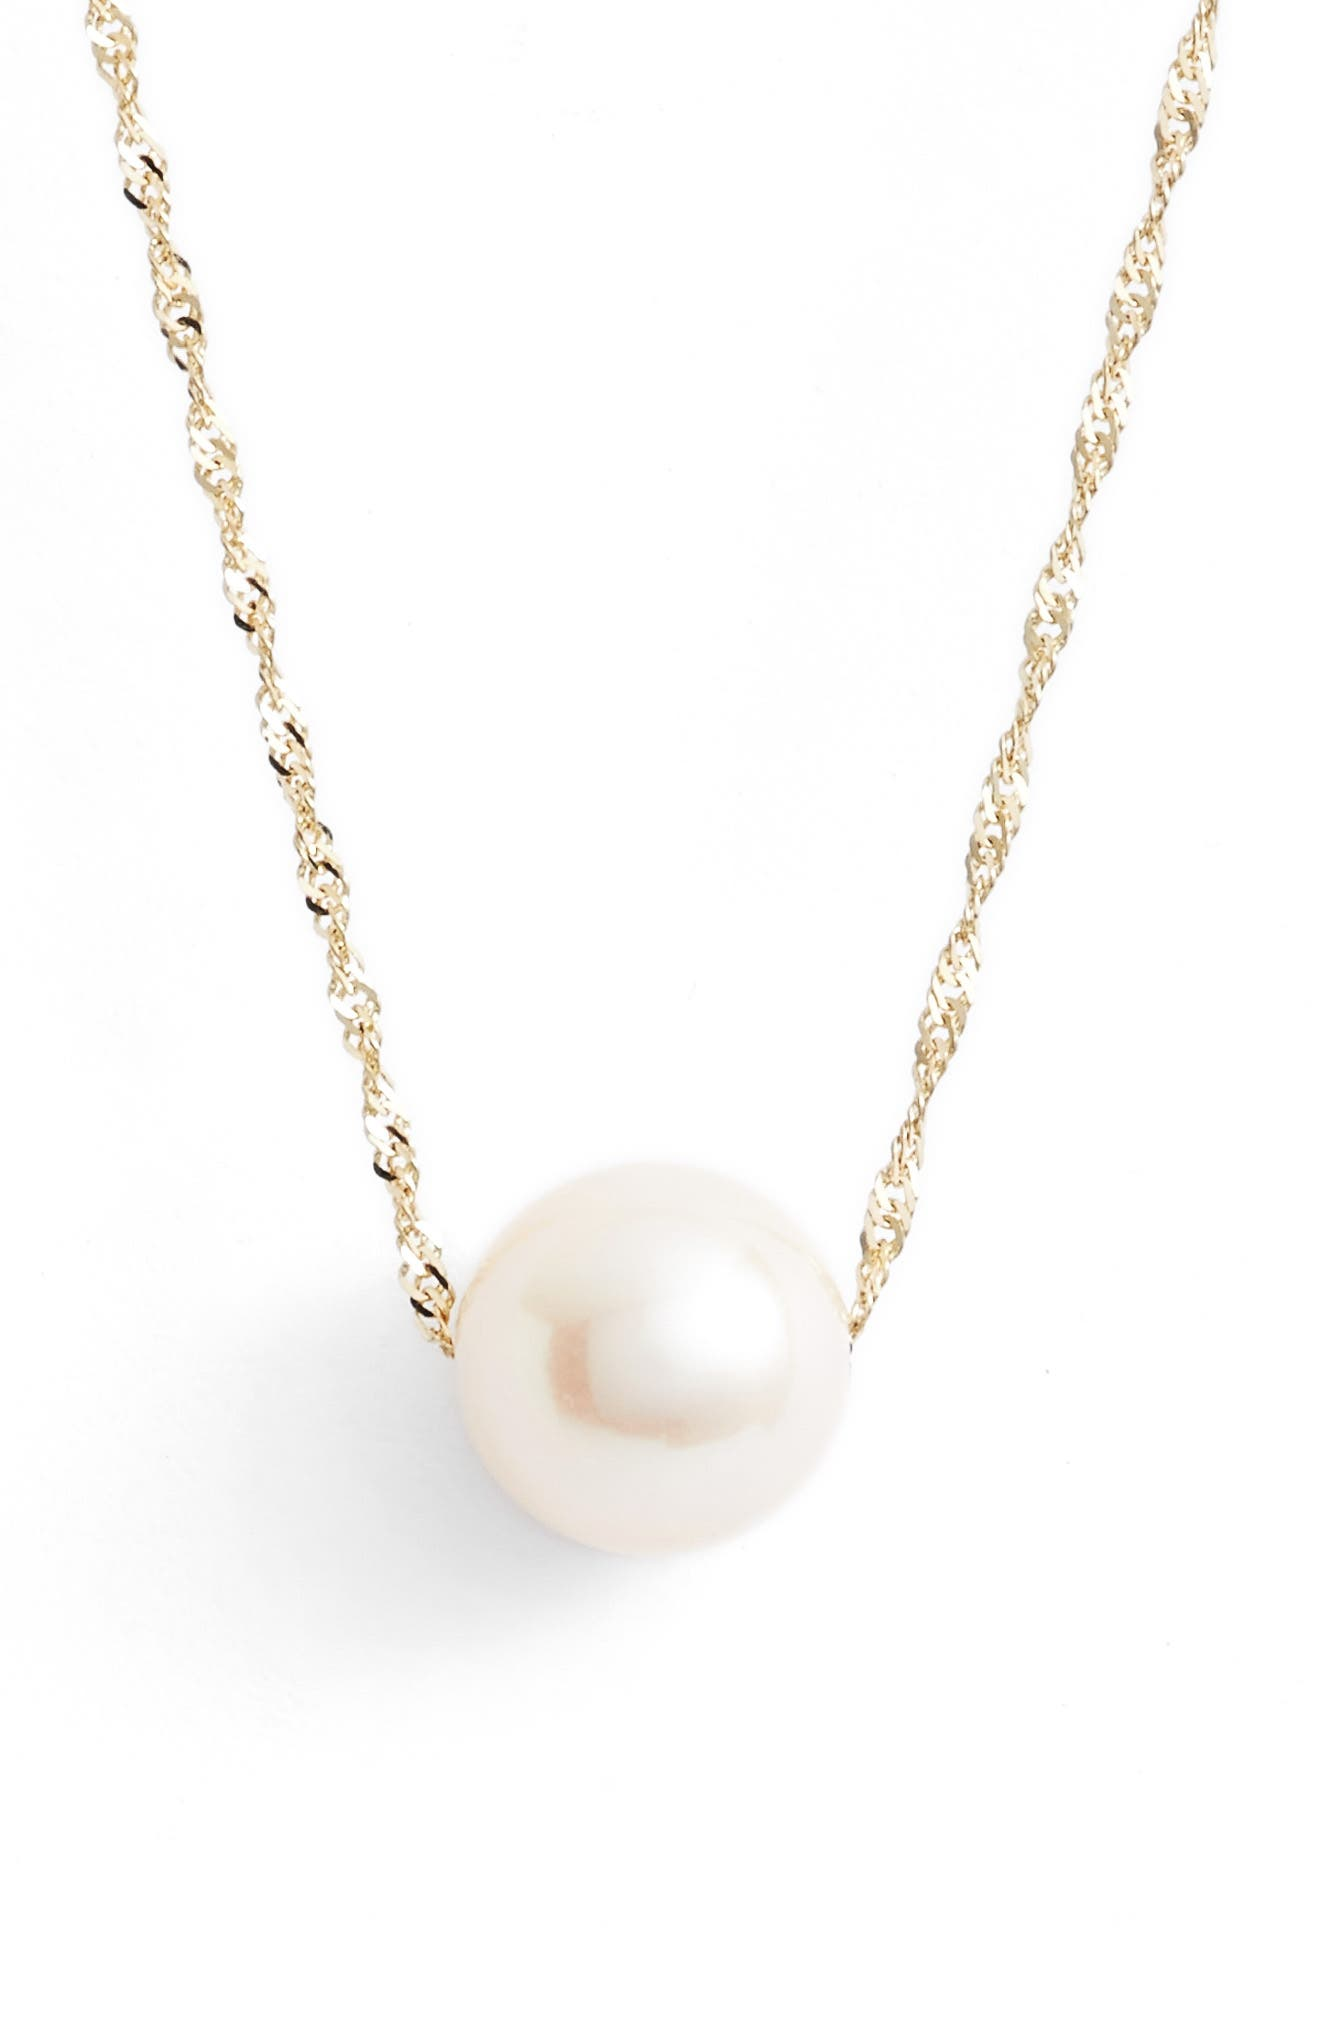 Solitaire Cultured Pearl Pendant Necklace,                             Main thumbnail 1, color,                             YELLOW GOLD/ WHITE PEARL